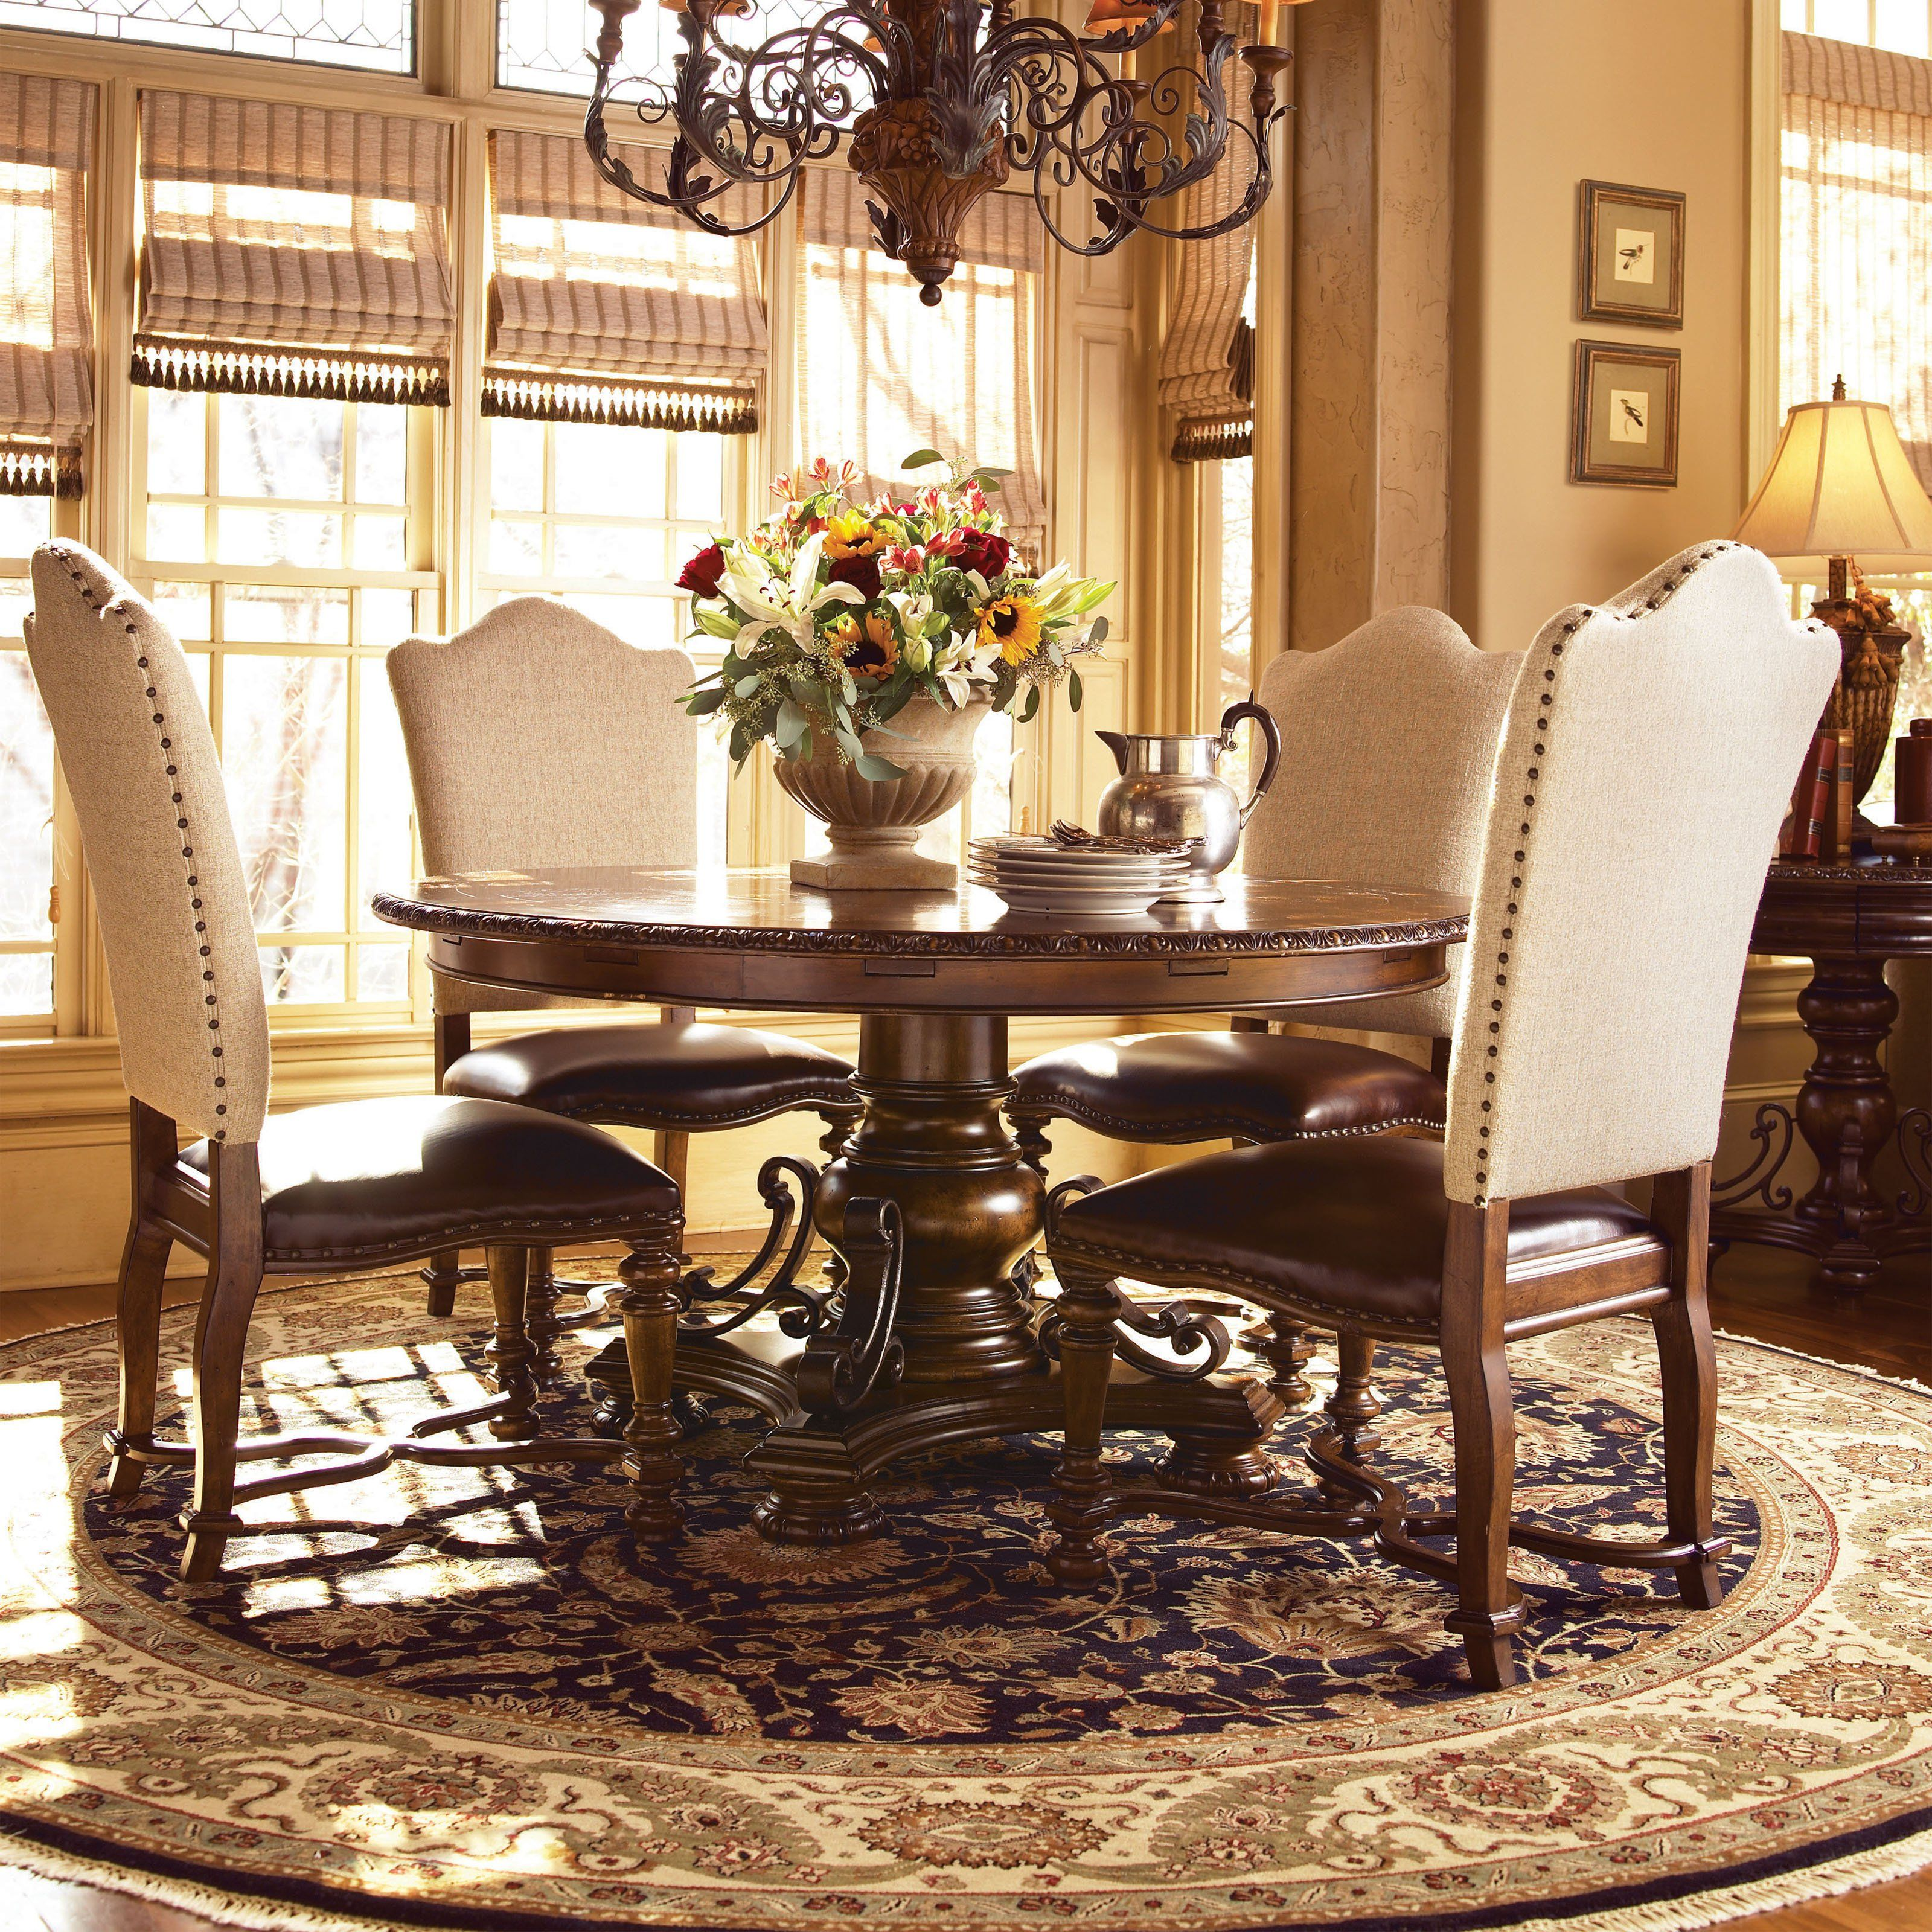 Universal Furniture Bolero Seville 5 Piece Dining Set With Leather Chairs Www Hayneedle Com Dining Table Universal Furniture Round Dining Set